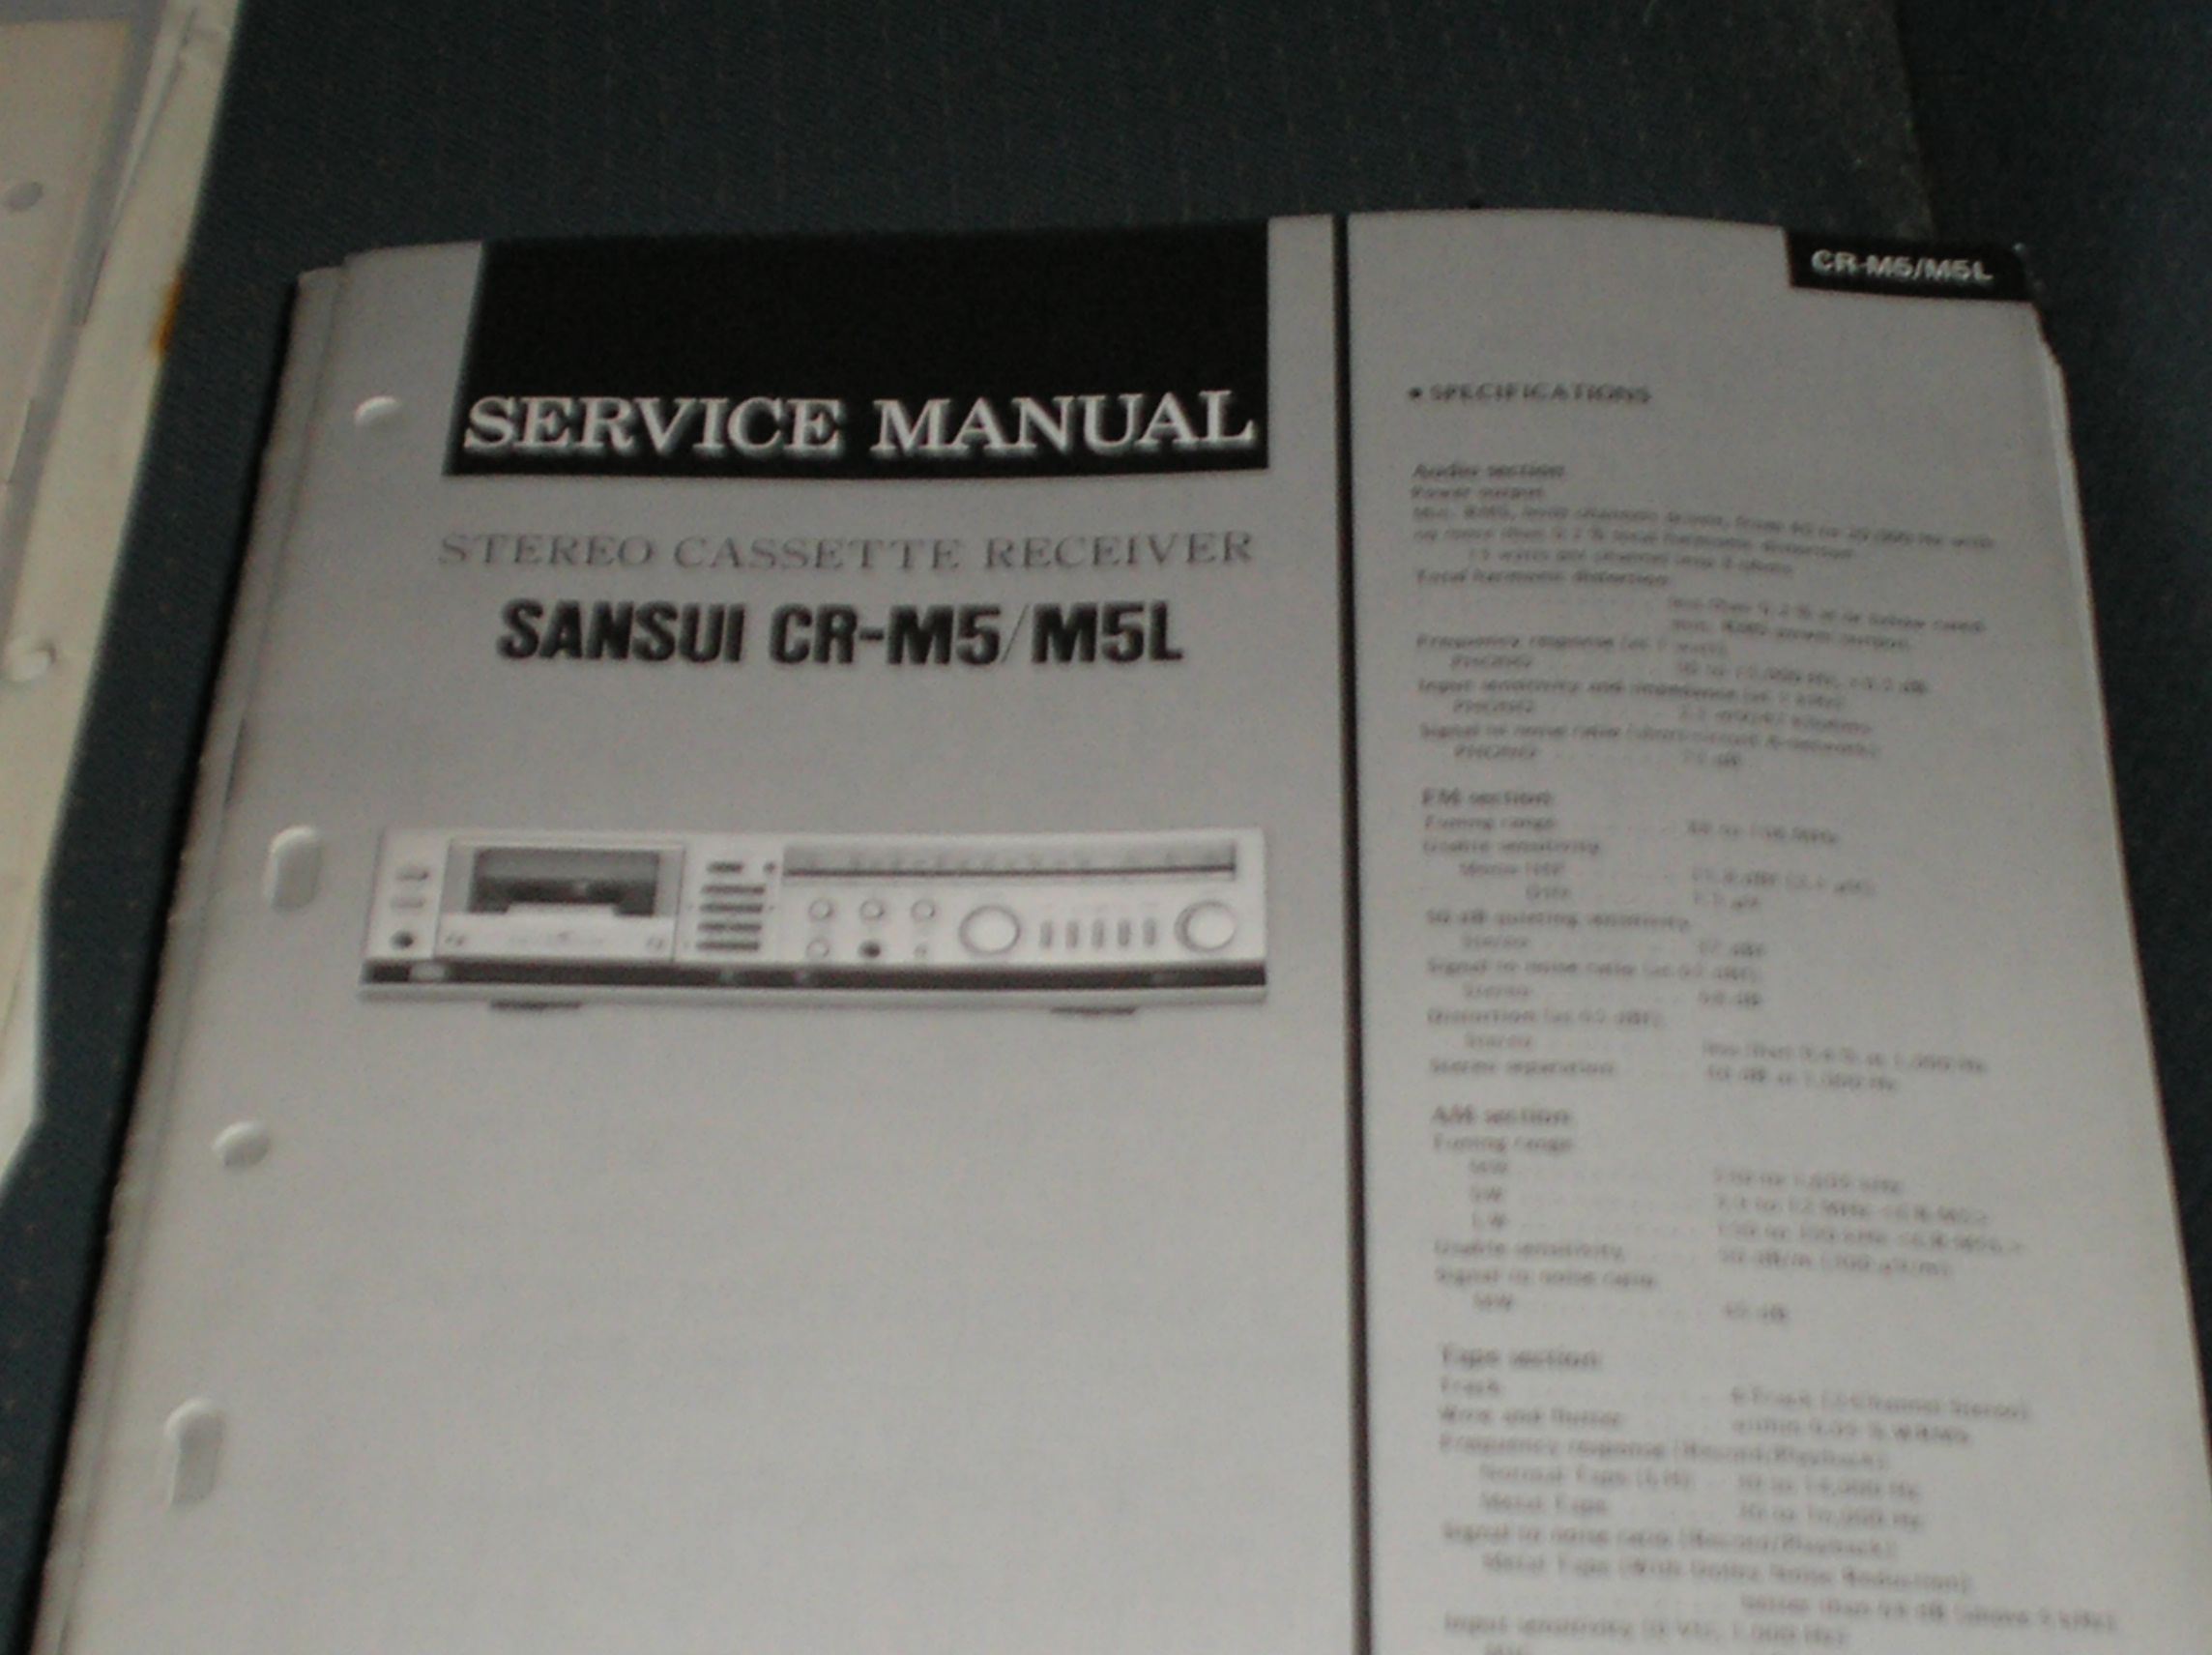 CR-M5 CR-M5L Cassette Receiver Service Manual